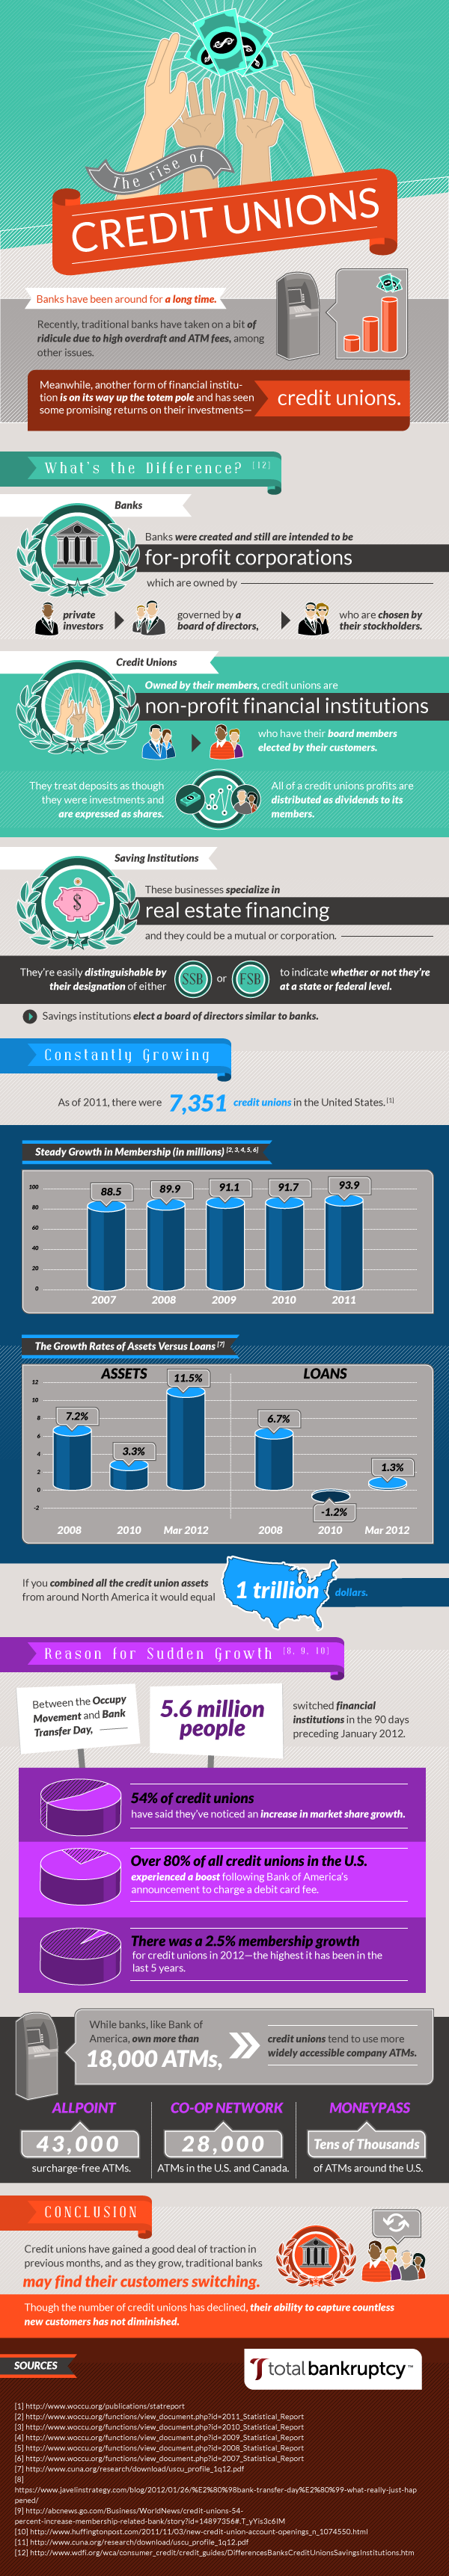 the-rise-of-credit-unions